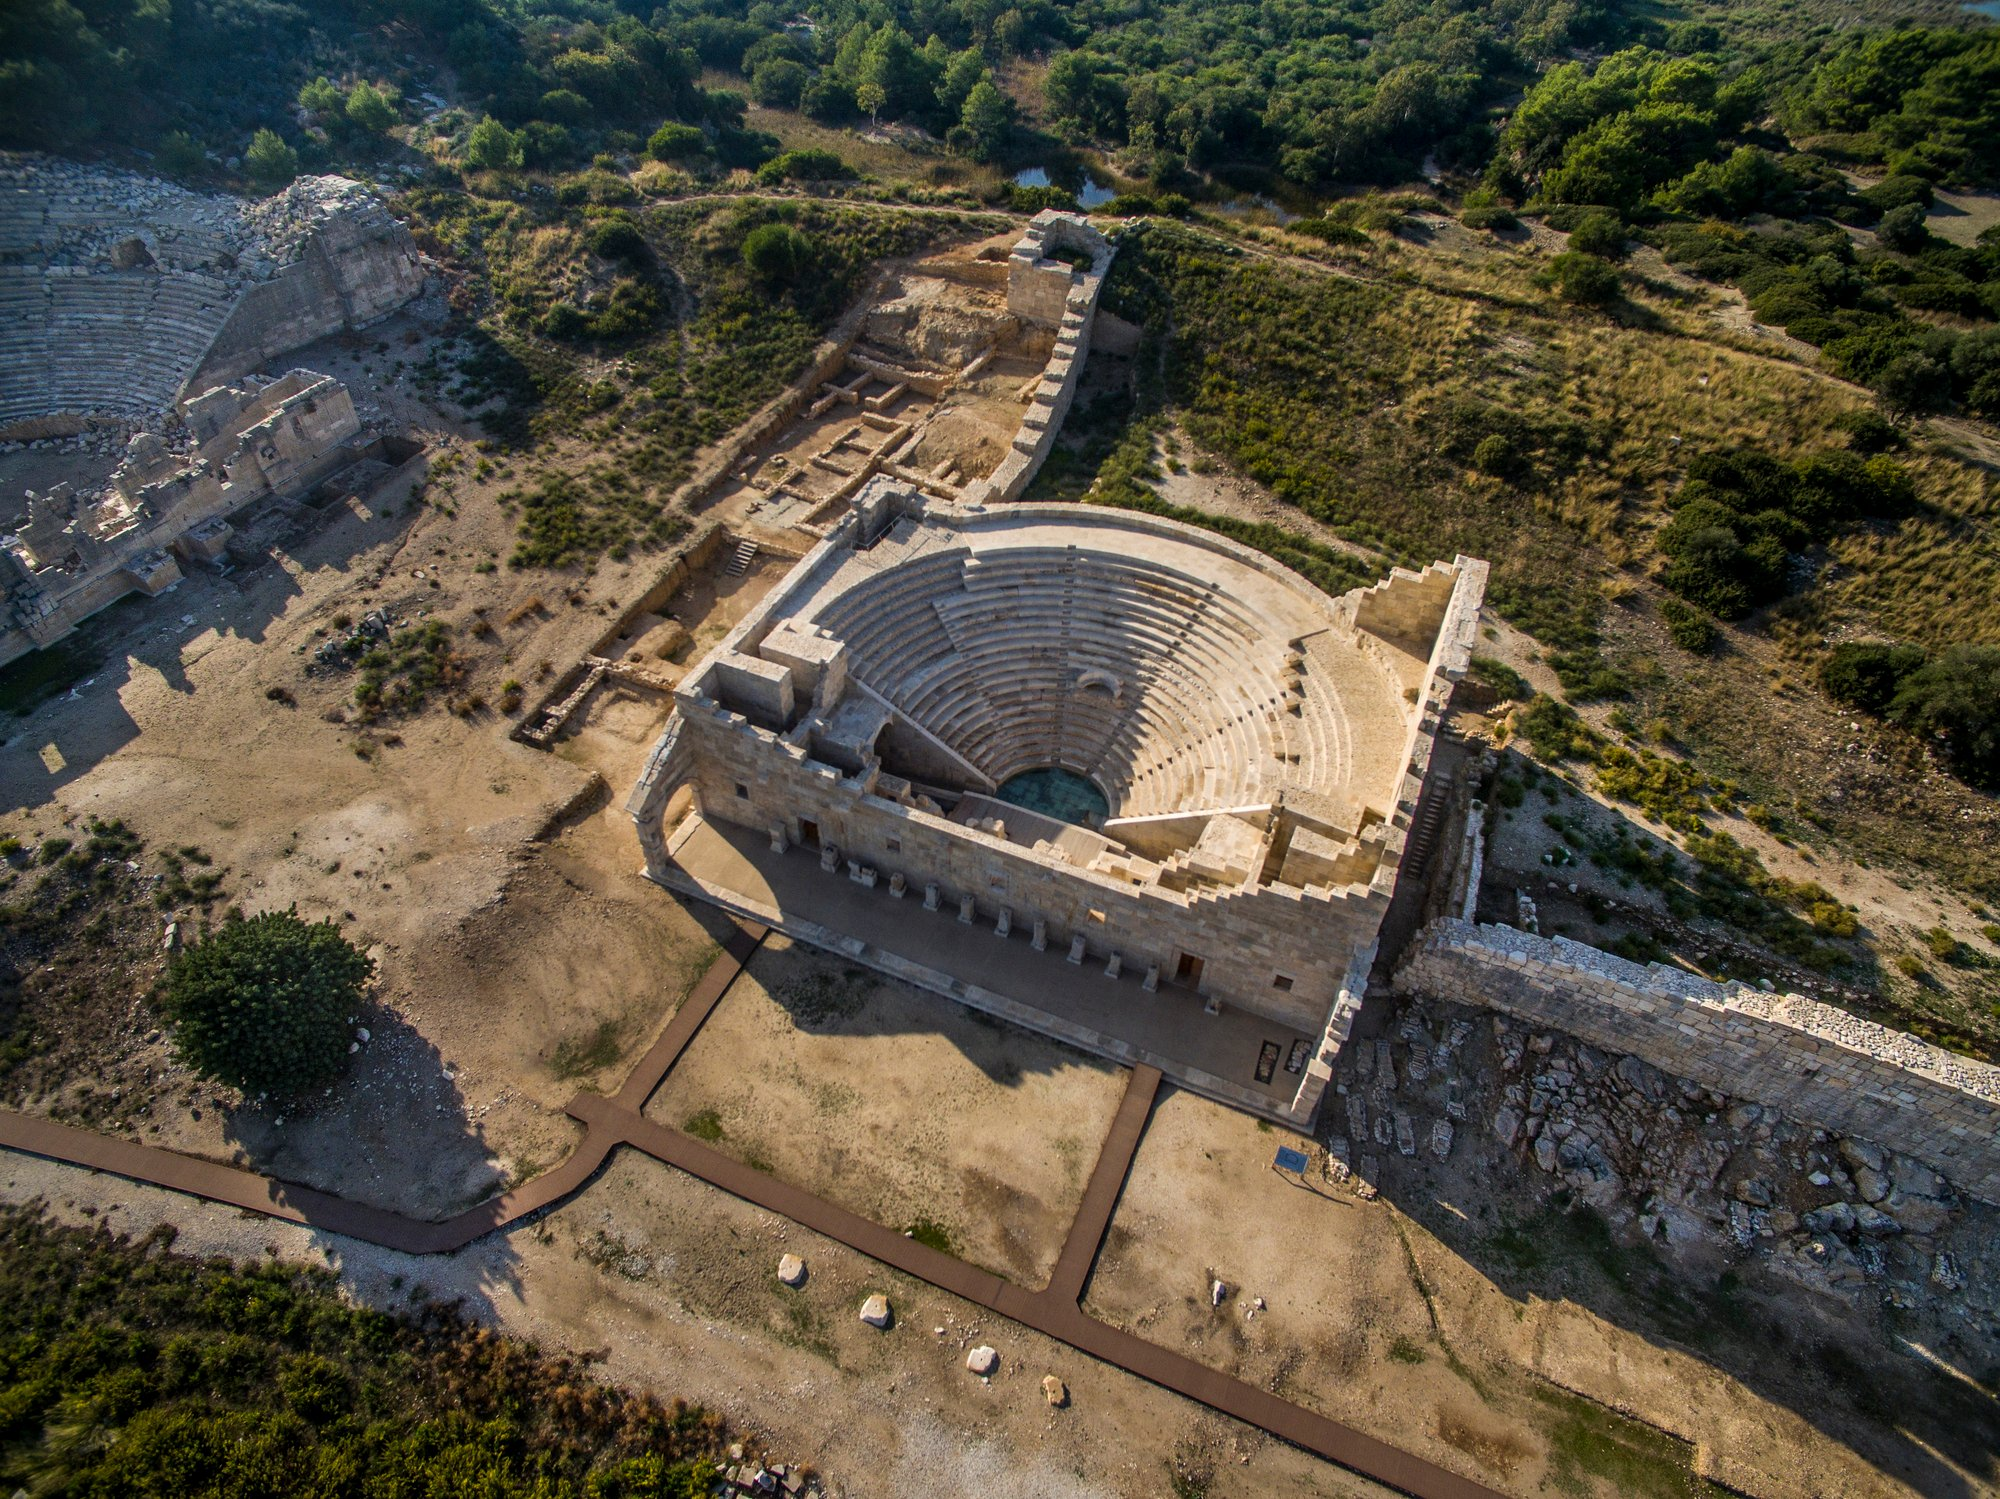 The sculptures were found during excavations in the ancient theater. (Yücel Özel / iStock Photo)